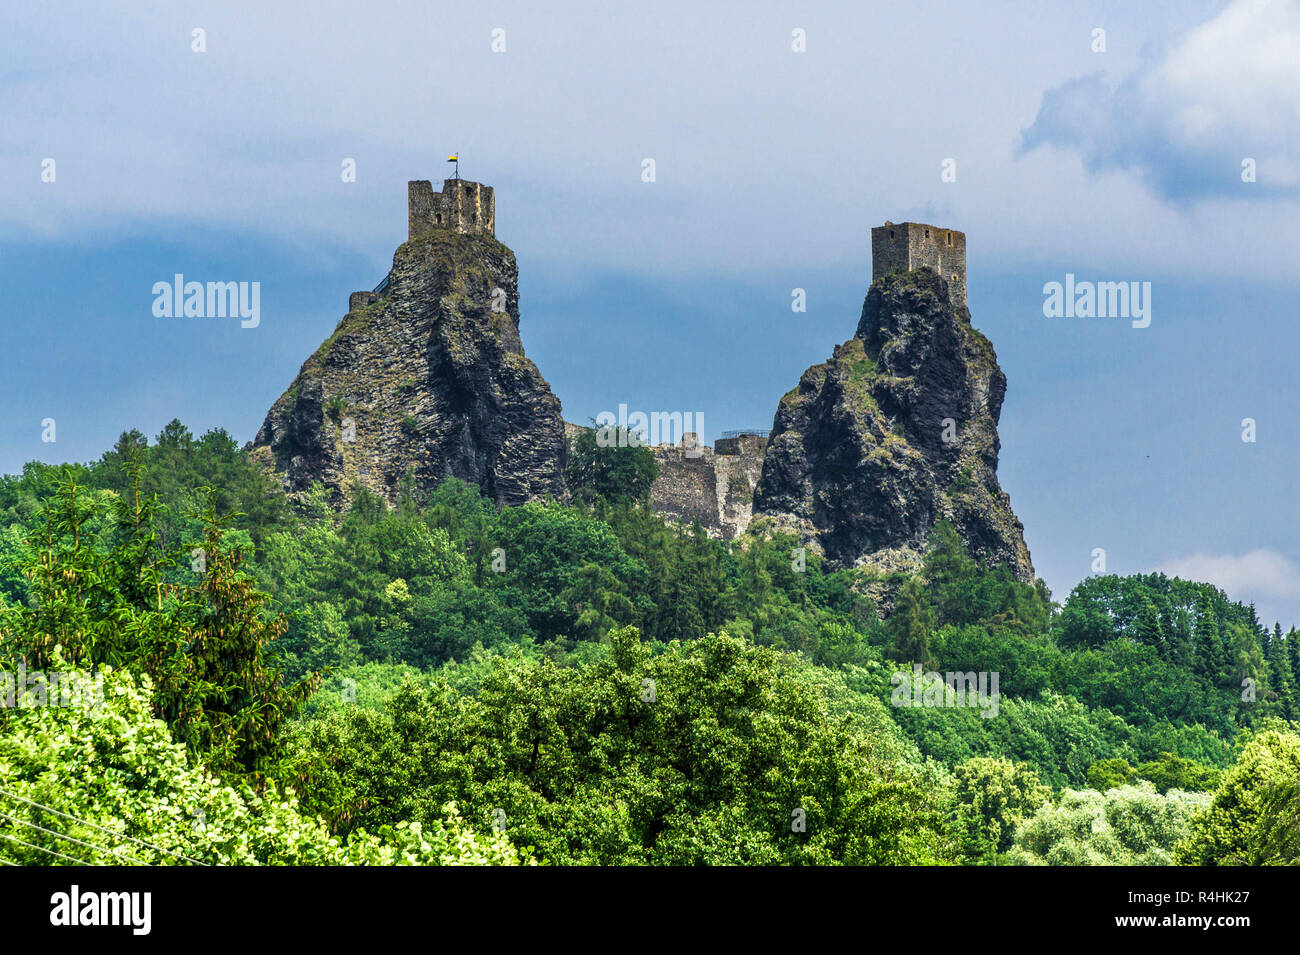 Böhmisches Paradies, Towers Baba and Panna of the BurgruineTrosky, Türme Baba und Panna der BurgruineTrosky - Stock Image